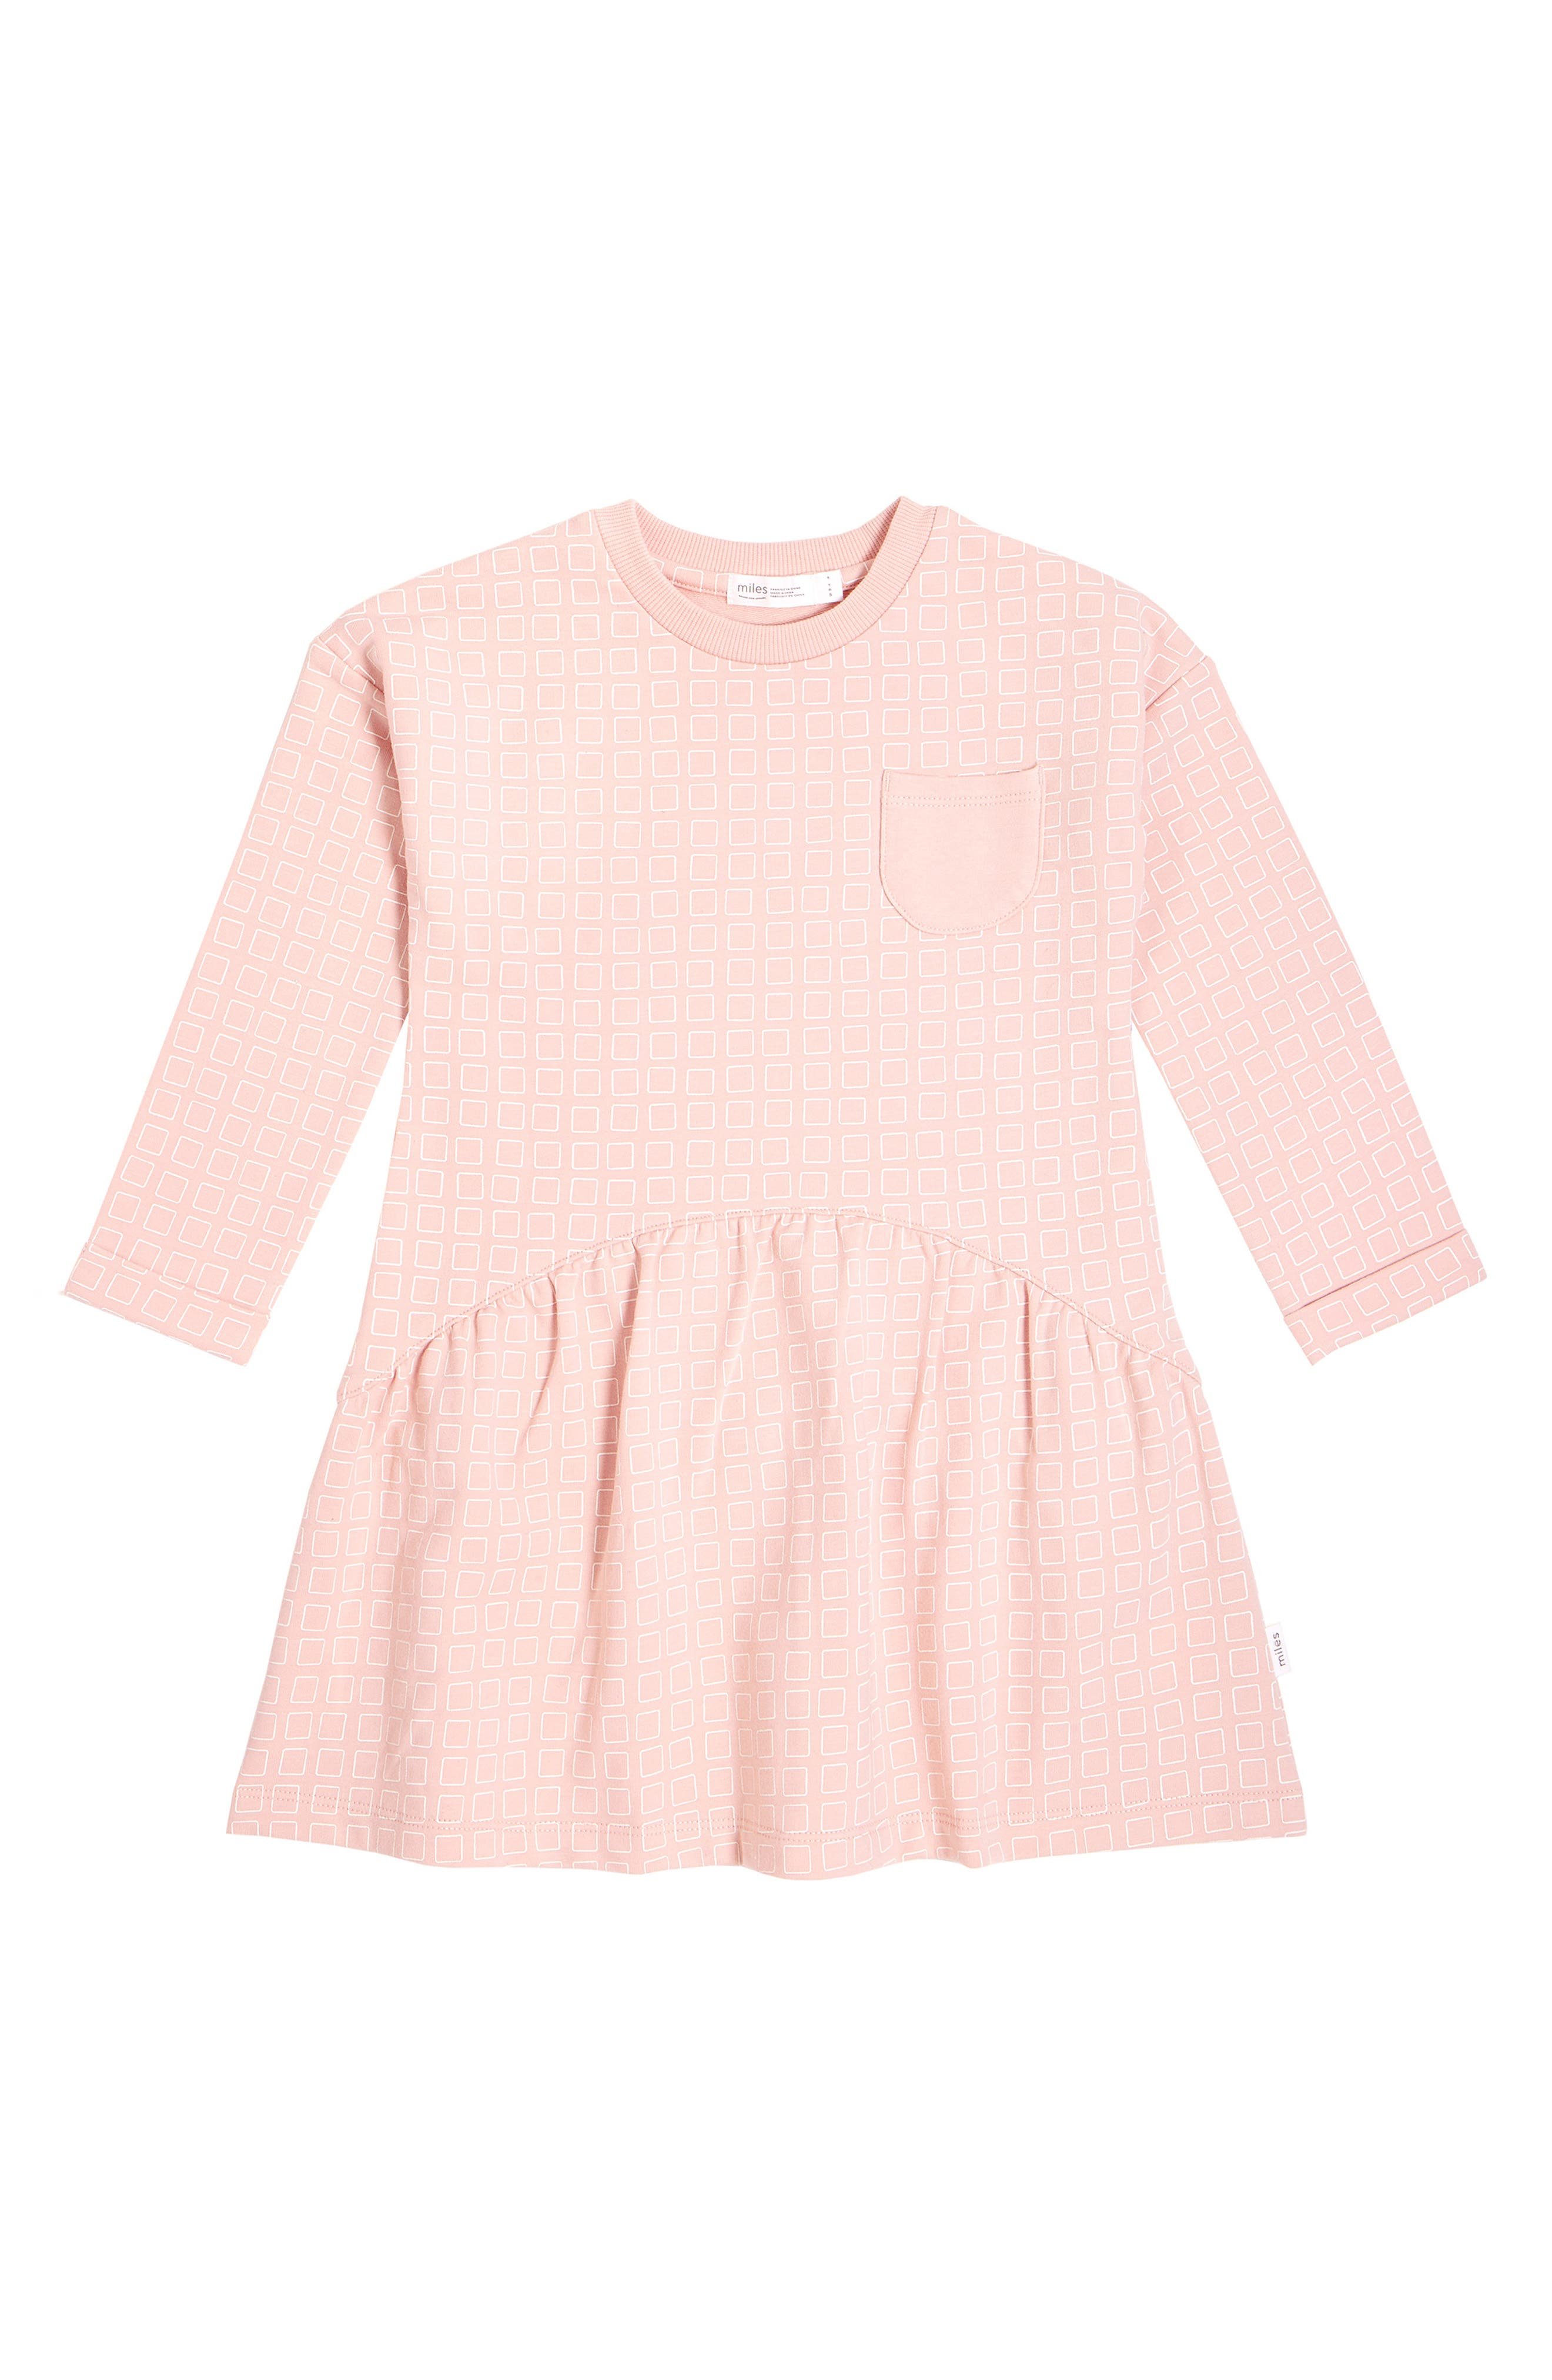 Geometric squares pattern a long-sleeve dress made from soft French terry to keep your little one cute and cozy. Style Name: Miles Kids\\\' Long Sleeve Dress (Toddler, Little Girl & Big Girl). Style Number: 6121562. Available in stores.